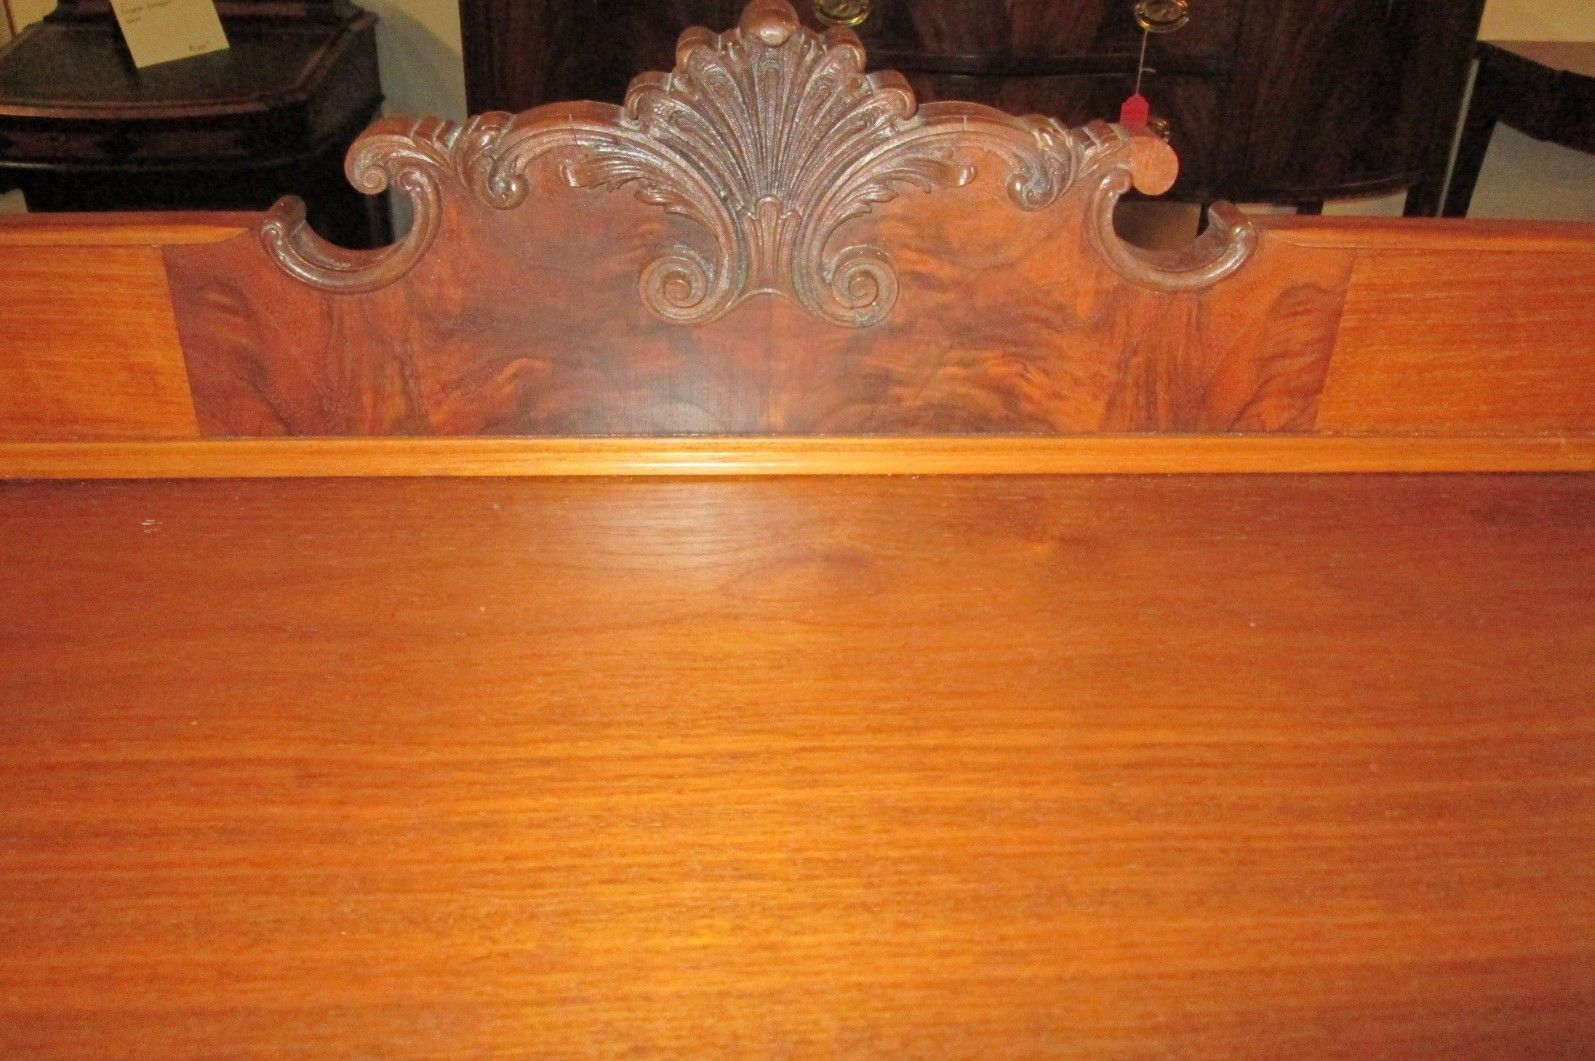 FINE ANTIQUE COLONIAL STYLE SIDEBOARD BY SKANDIA FURNITURE COMPANY  ROCKFORD, IL